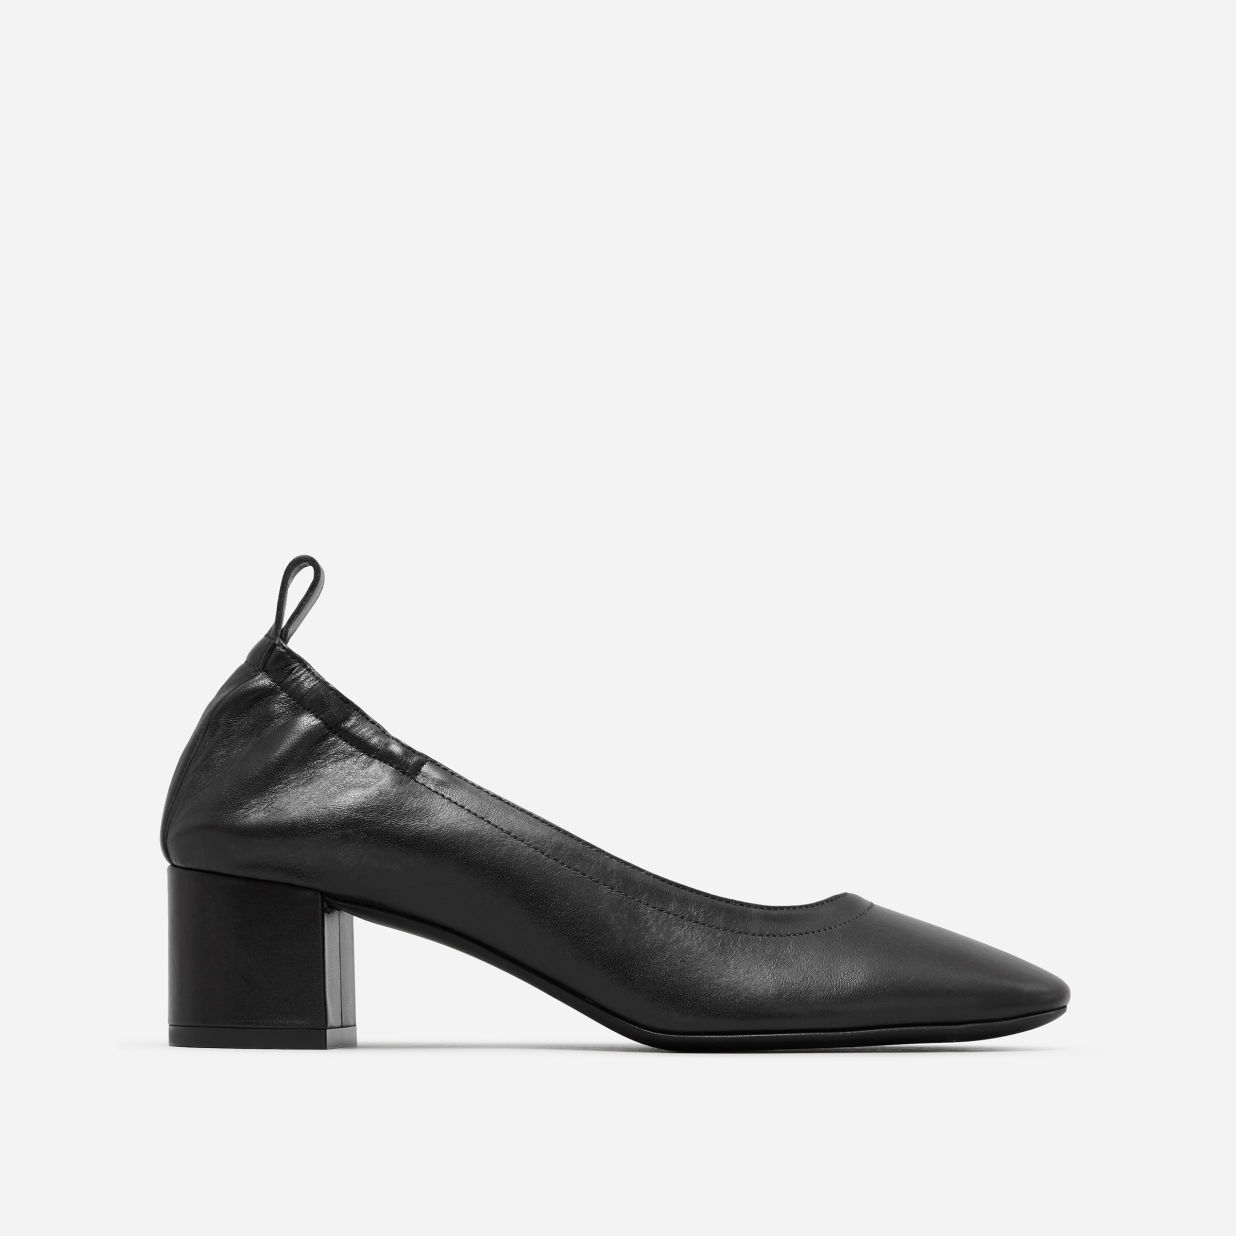 new release rational construction stable quality The Day Heel